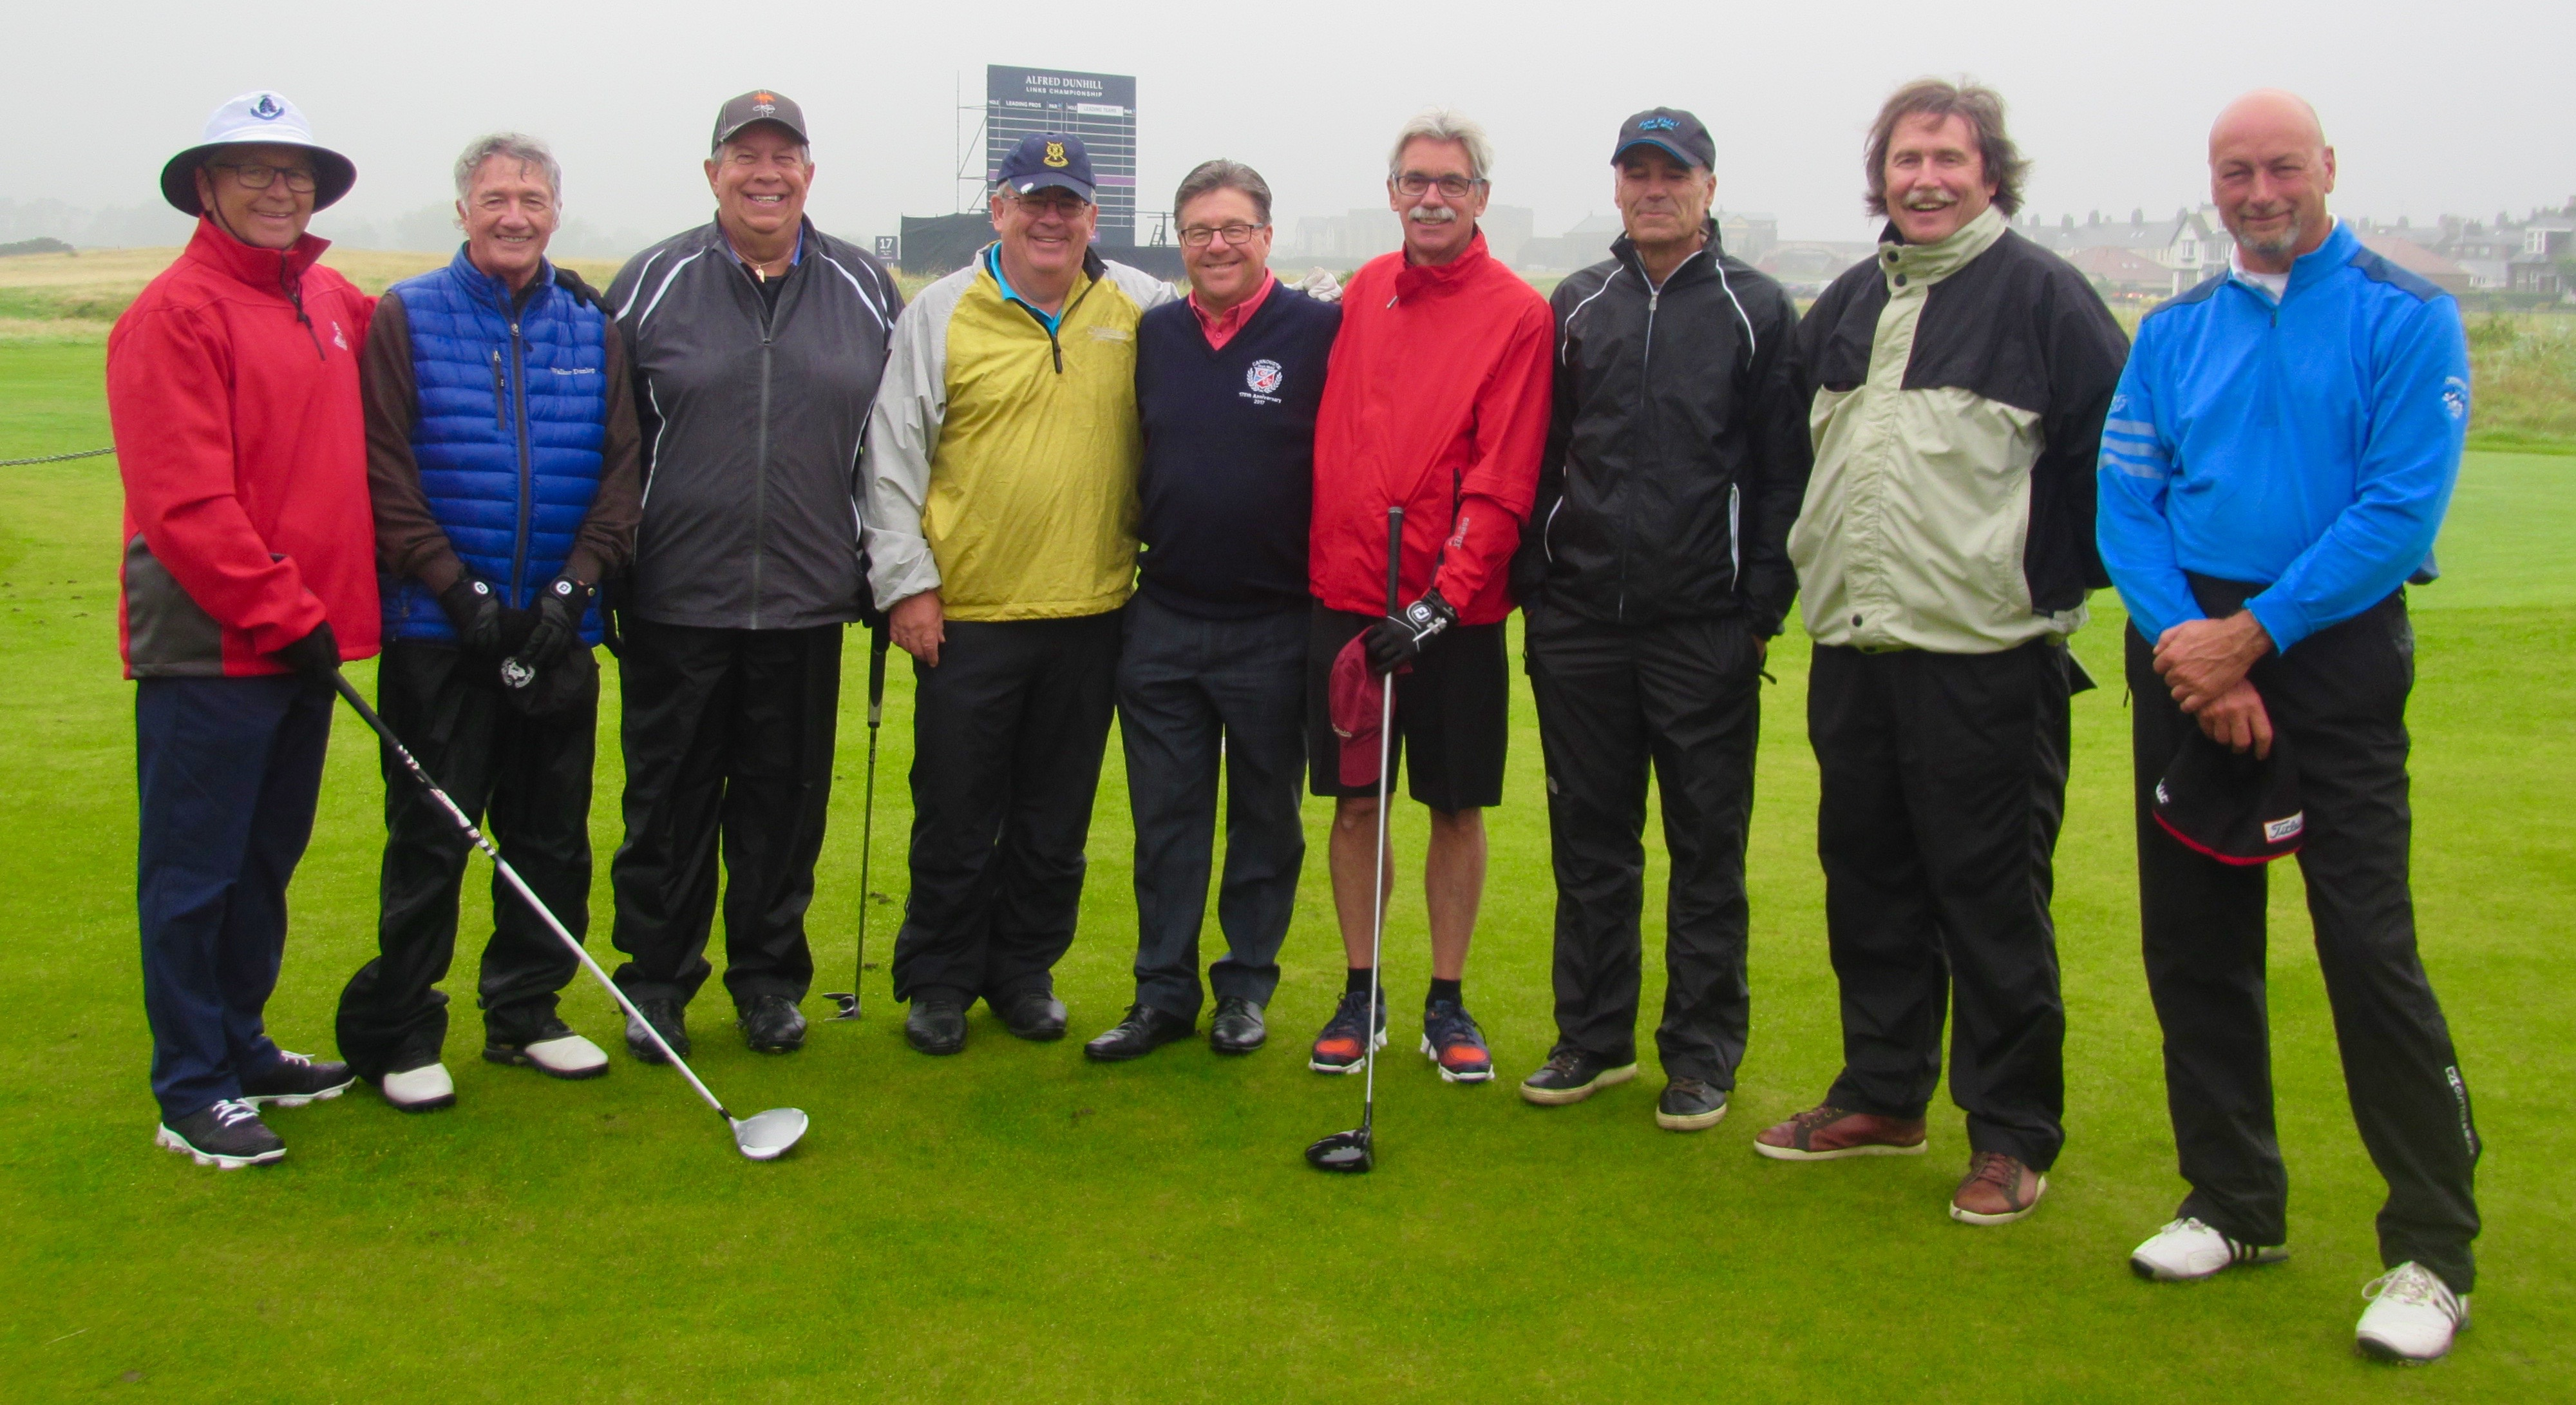 With the Carnoustie Captain Bill Thompson